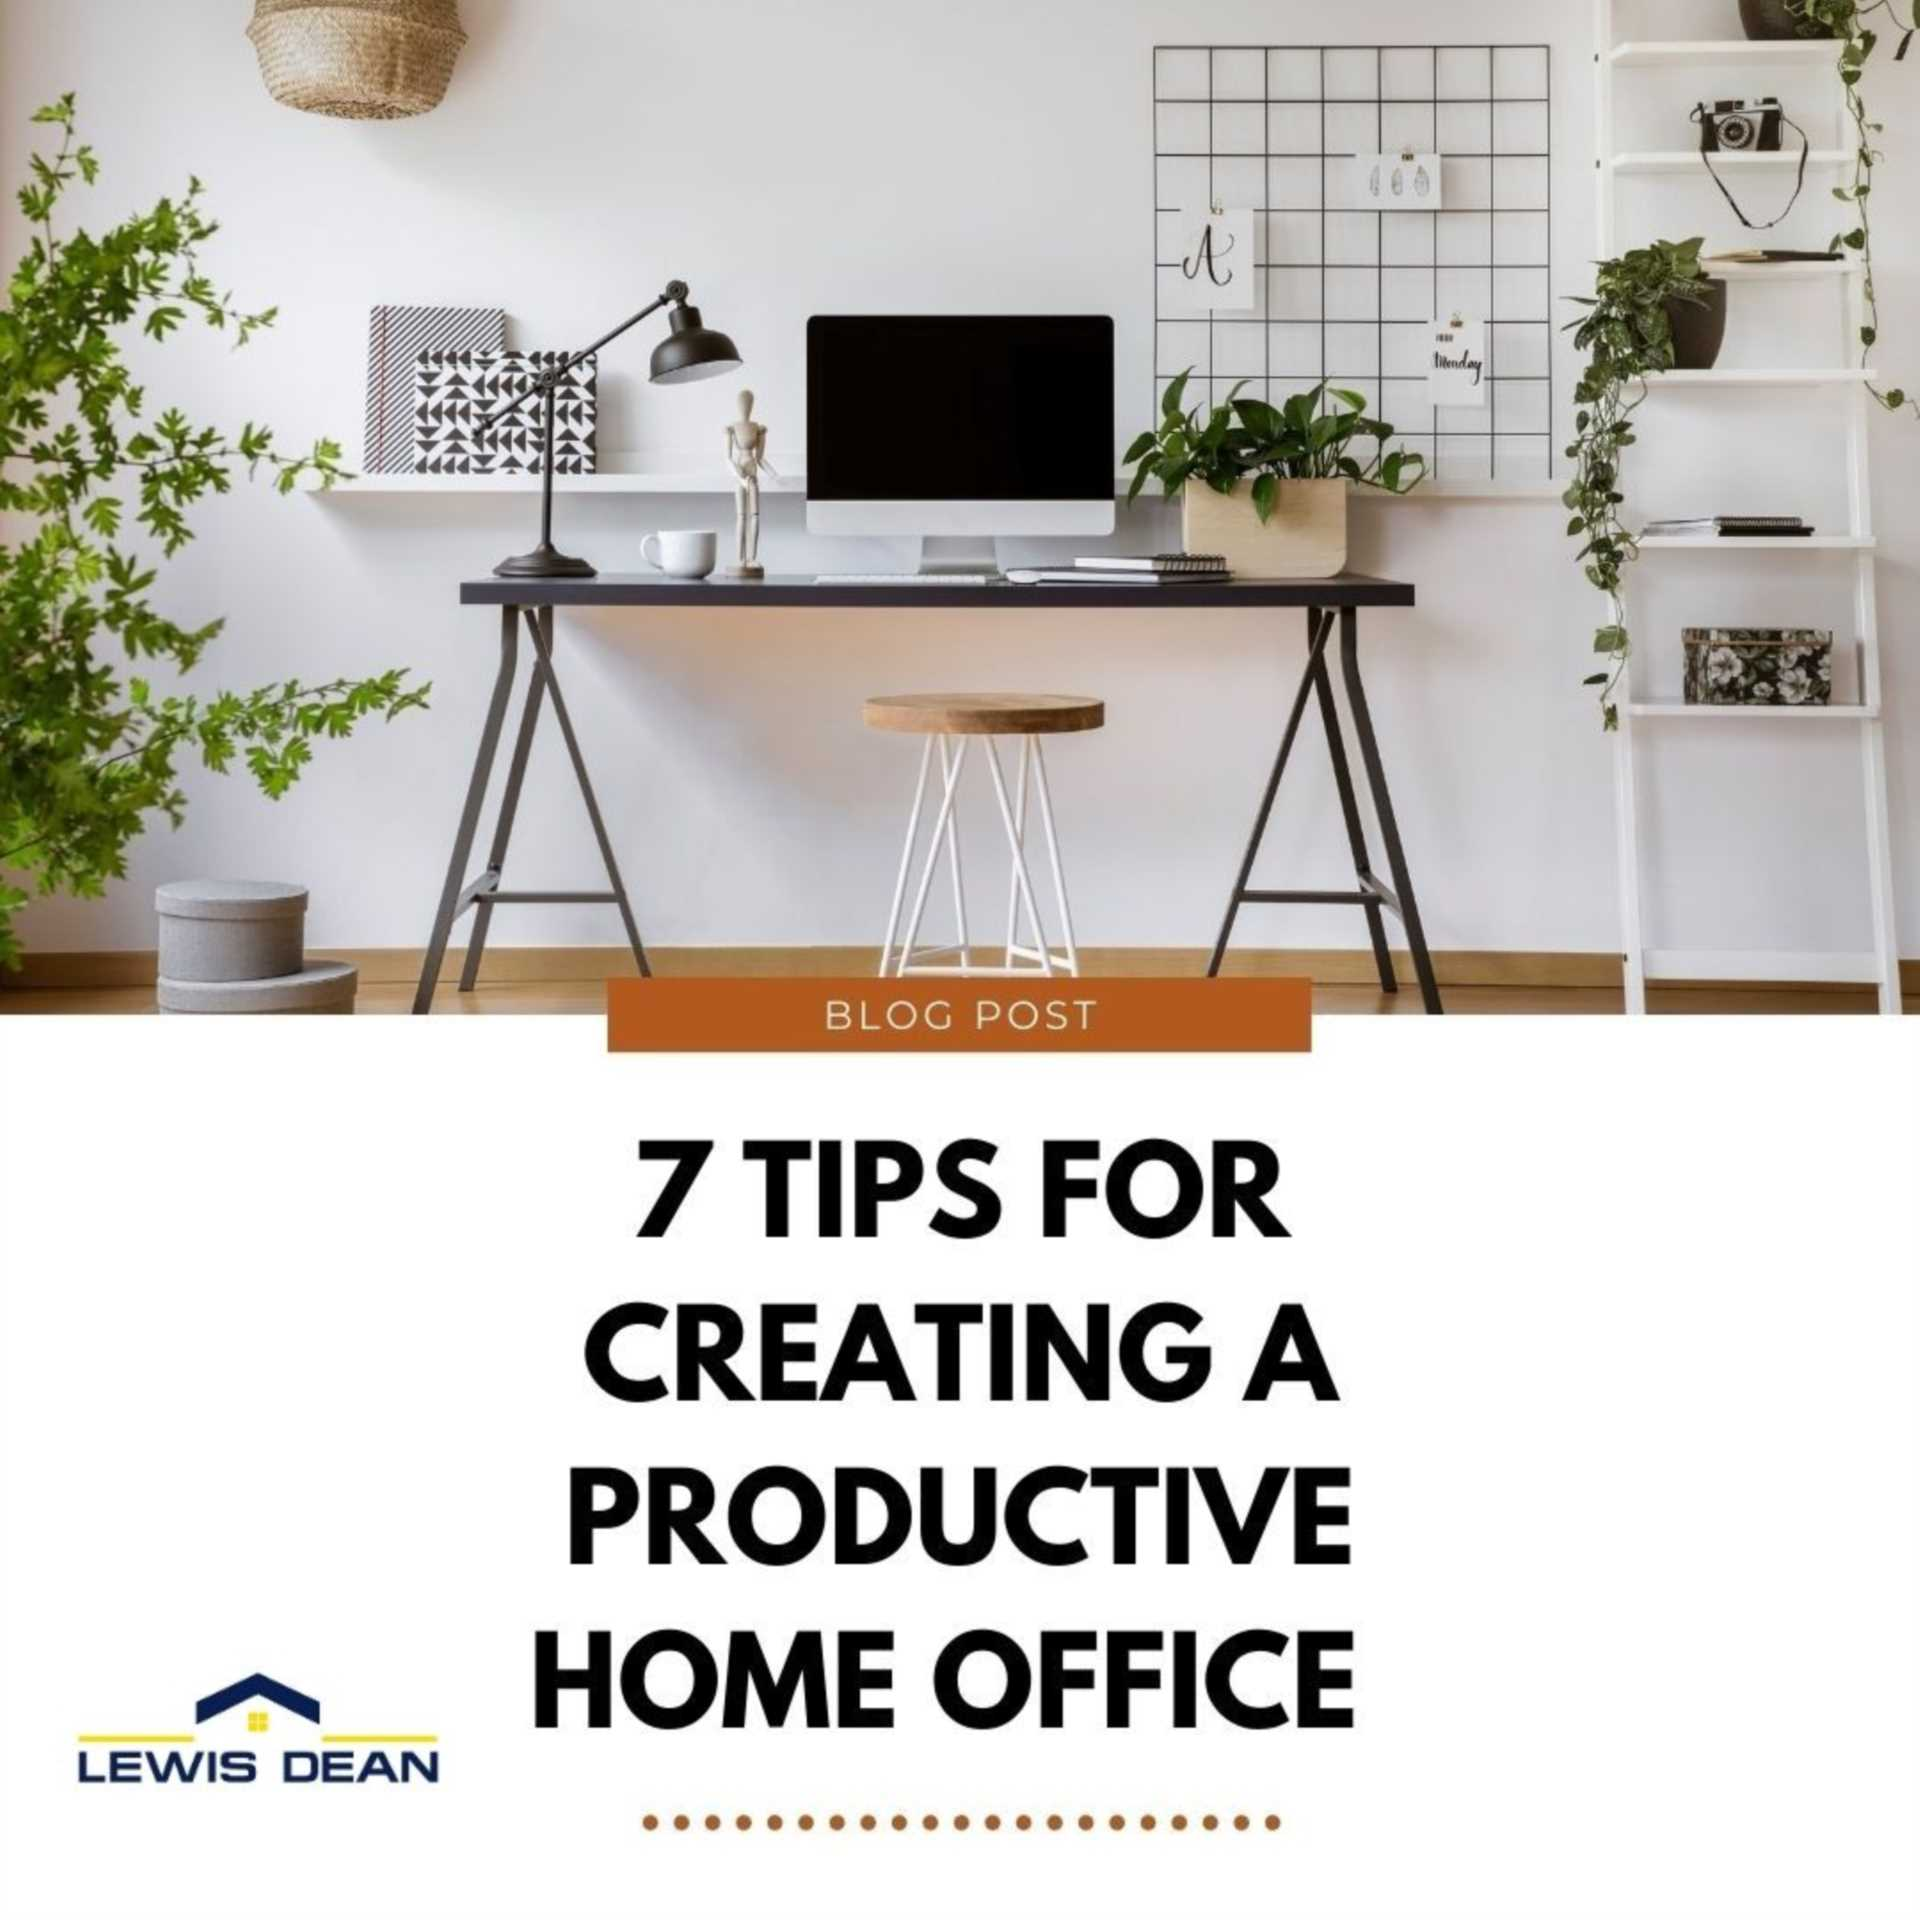 7 Tips for Creating a Productive Home Office in Your Poole Property